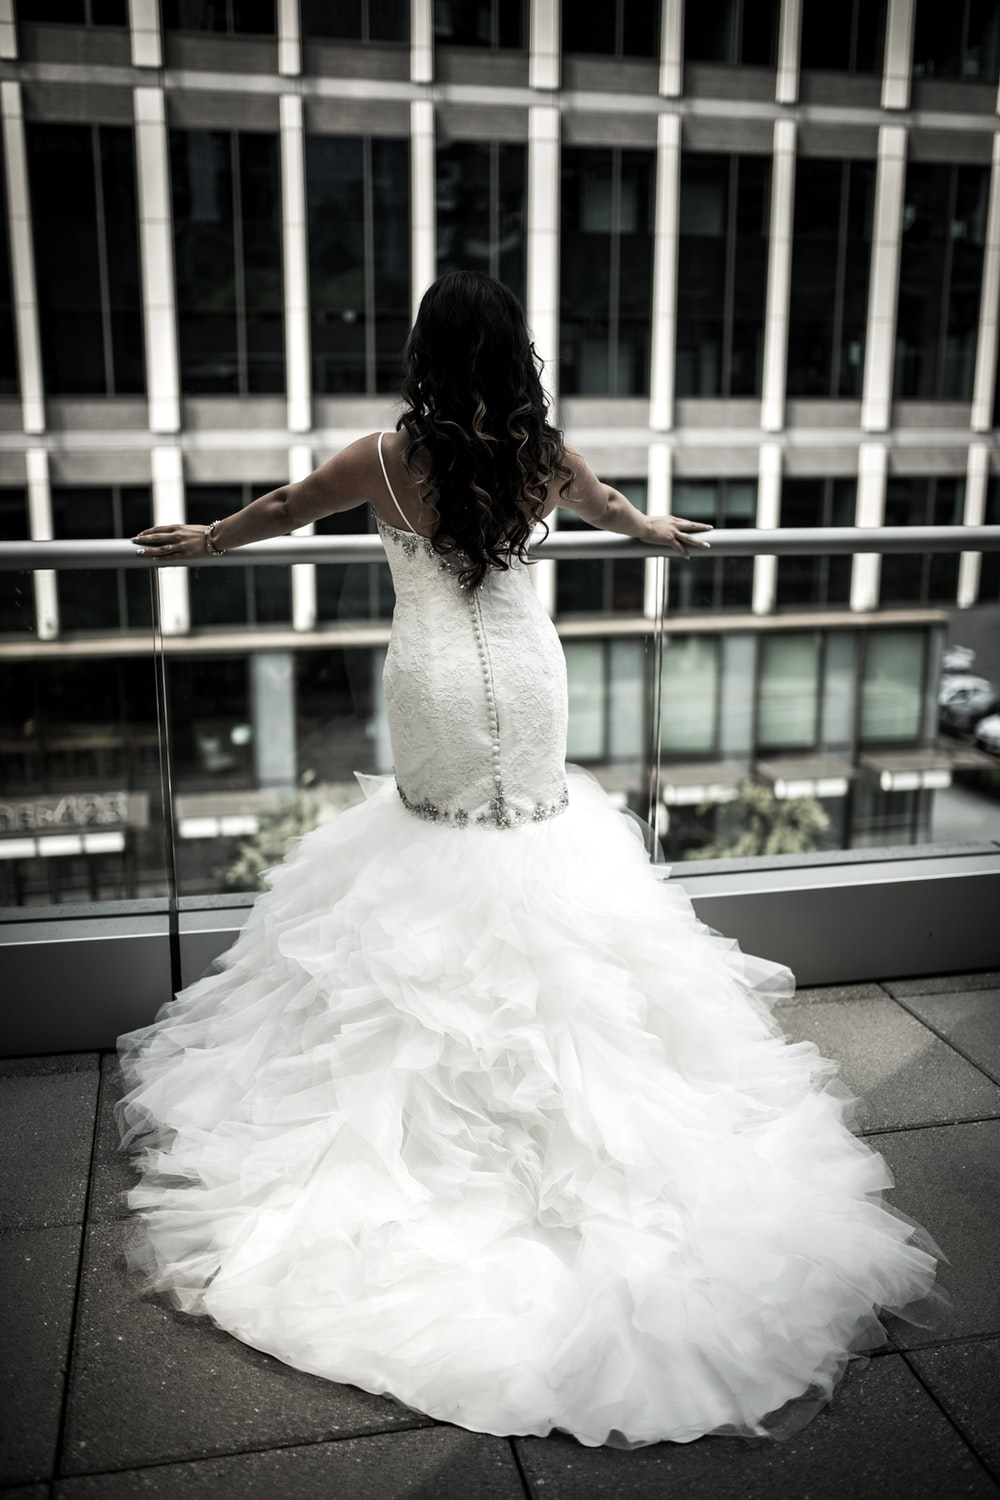 woman in white wedding dress standing in front balustrades